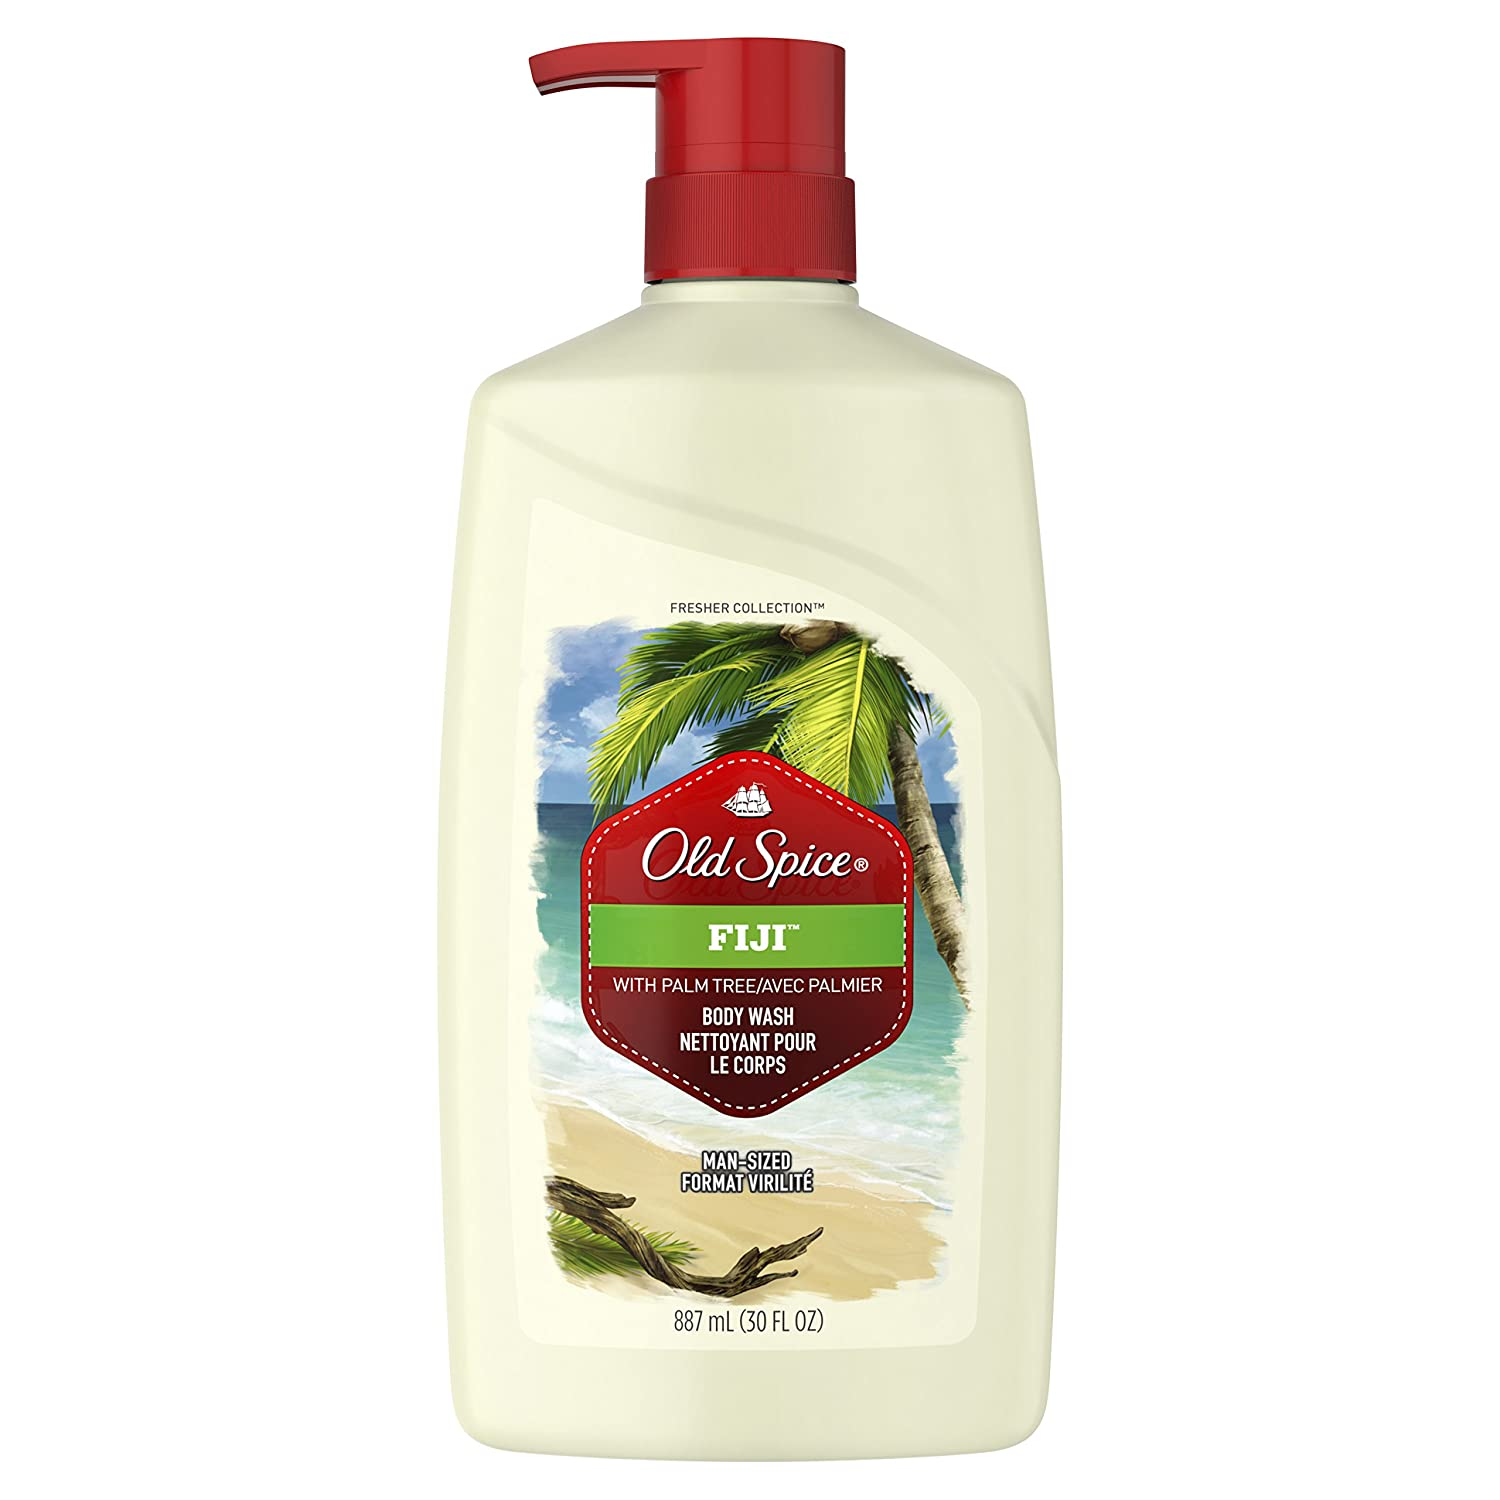 Old Spice Fresher Fiji Scent Body Wash for Men, 887 ml Procter and Gamble